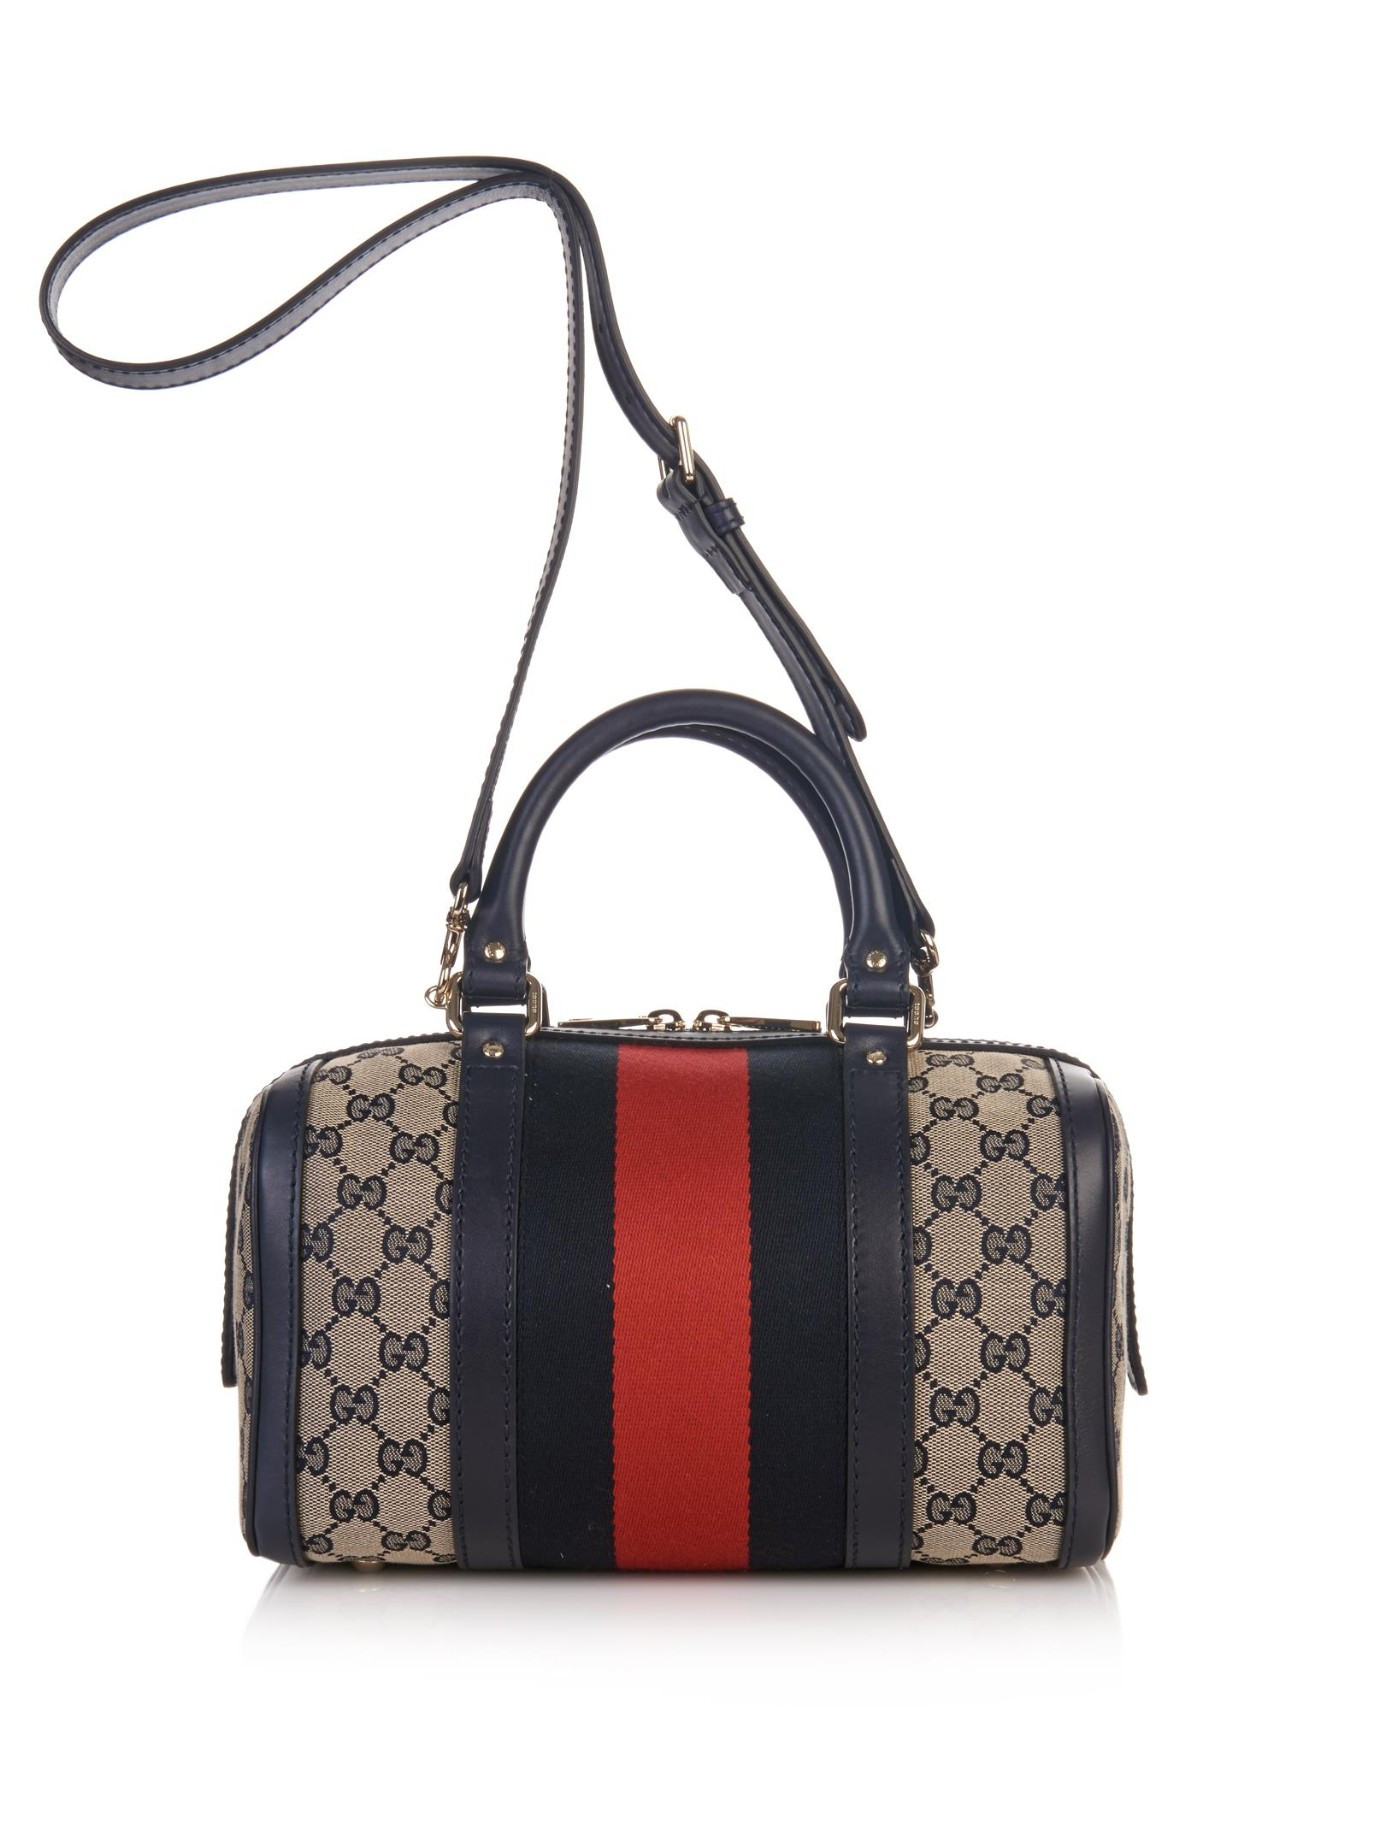 8803aae10a8a Gucci Vintage Web Gg Canvas Mini Bowling Bag in Gray - Lyst